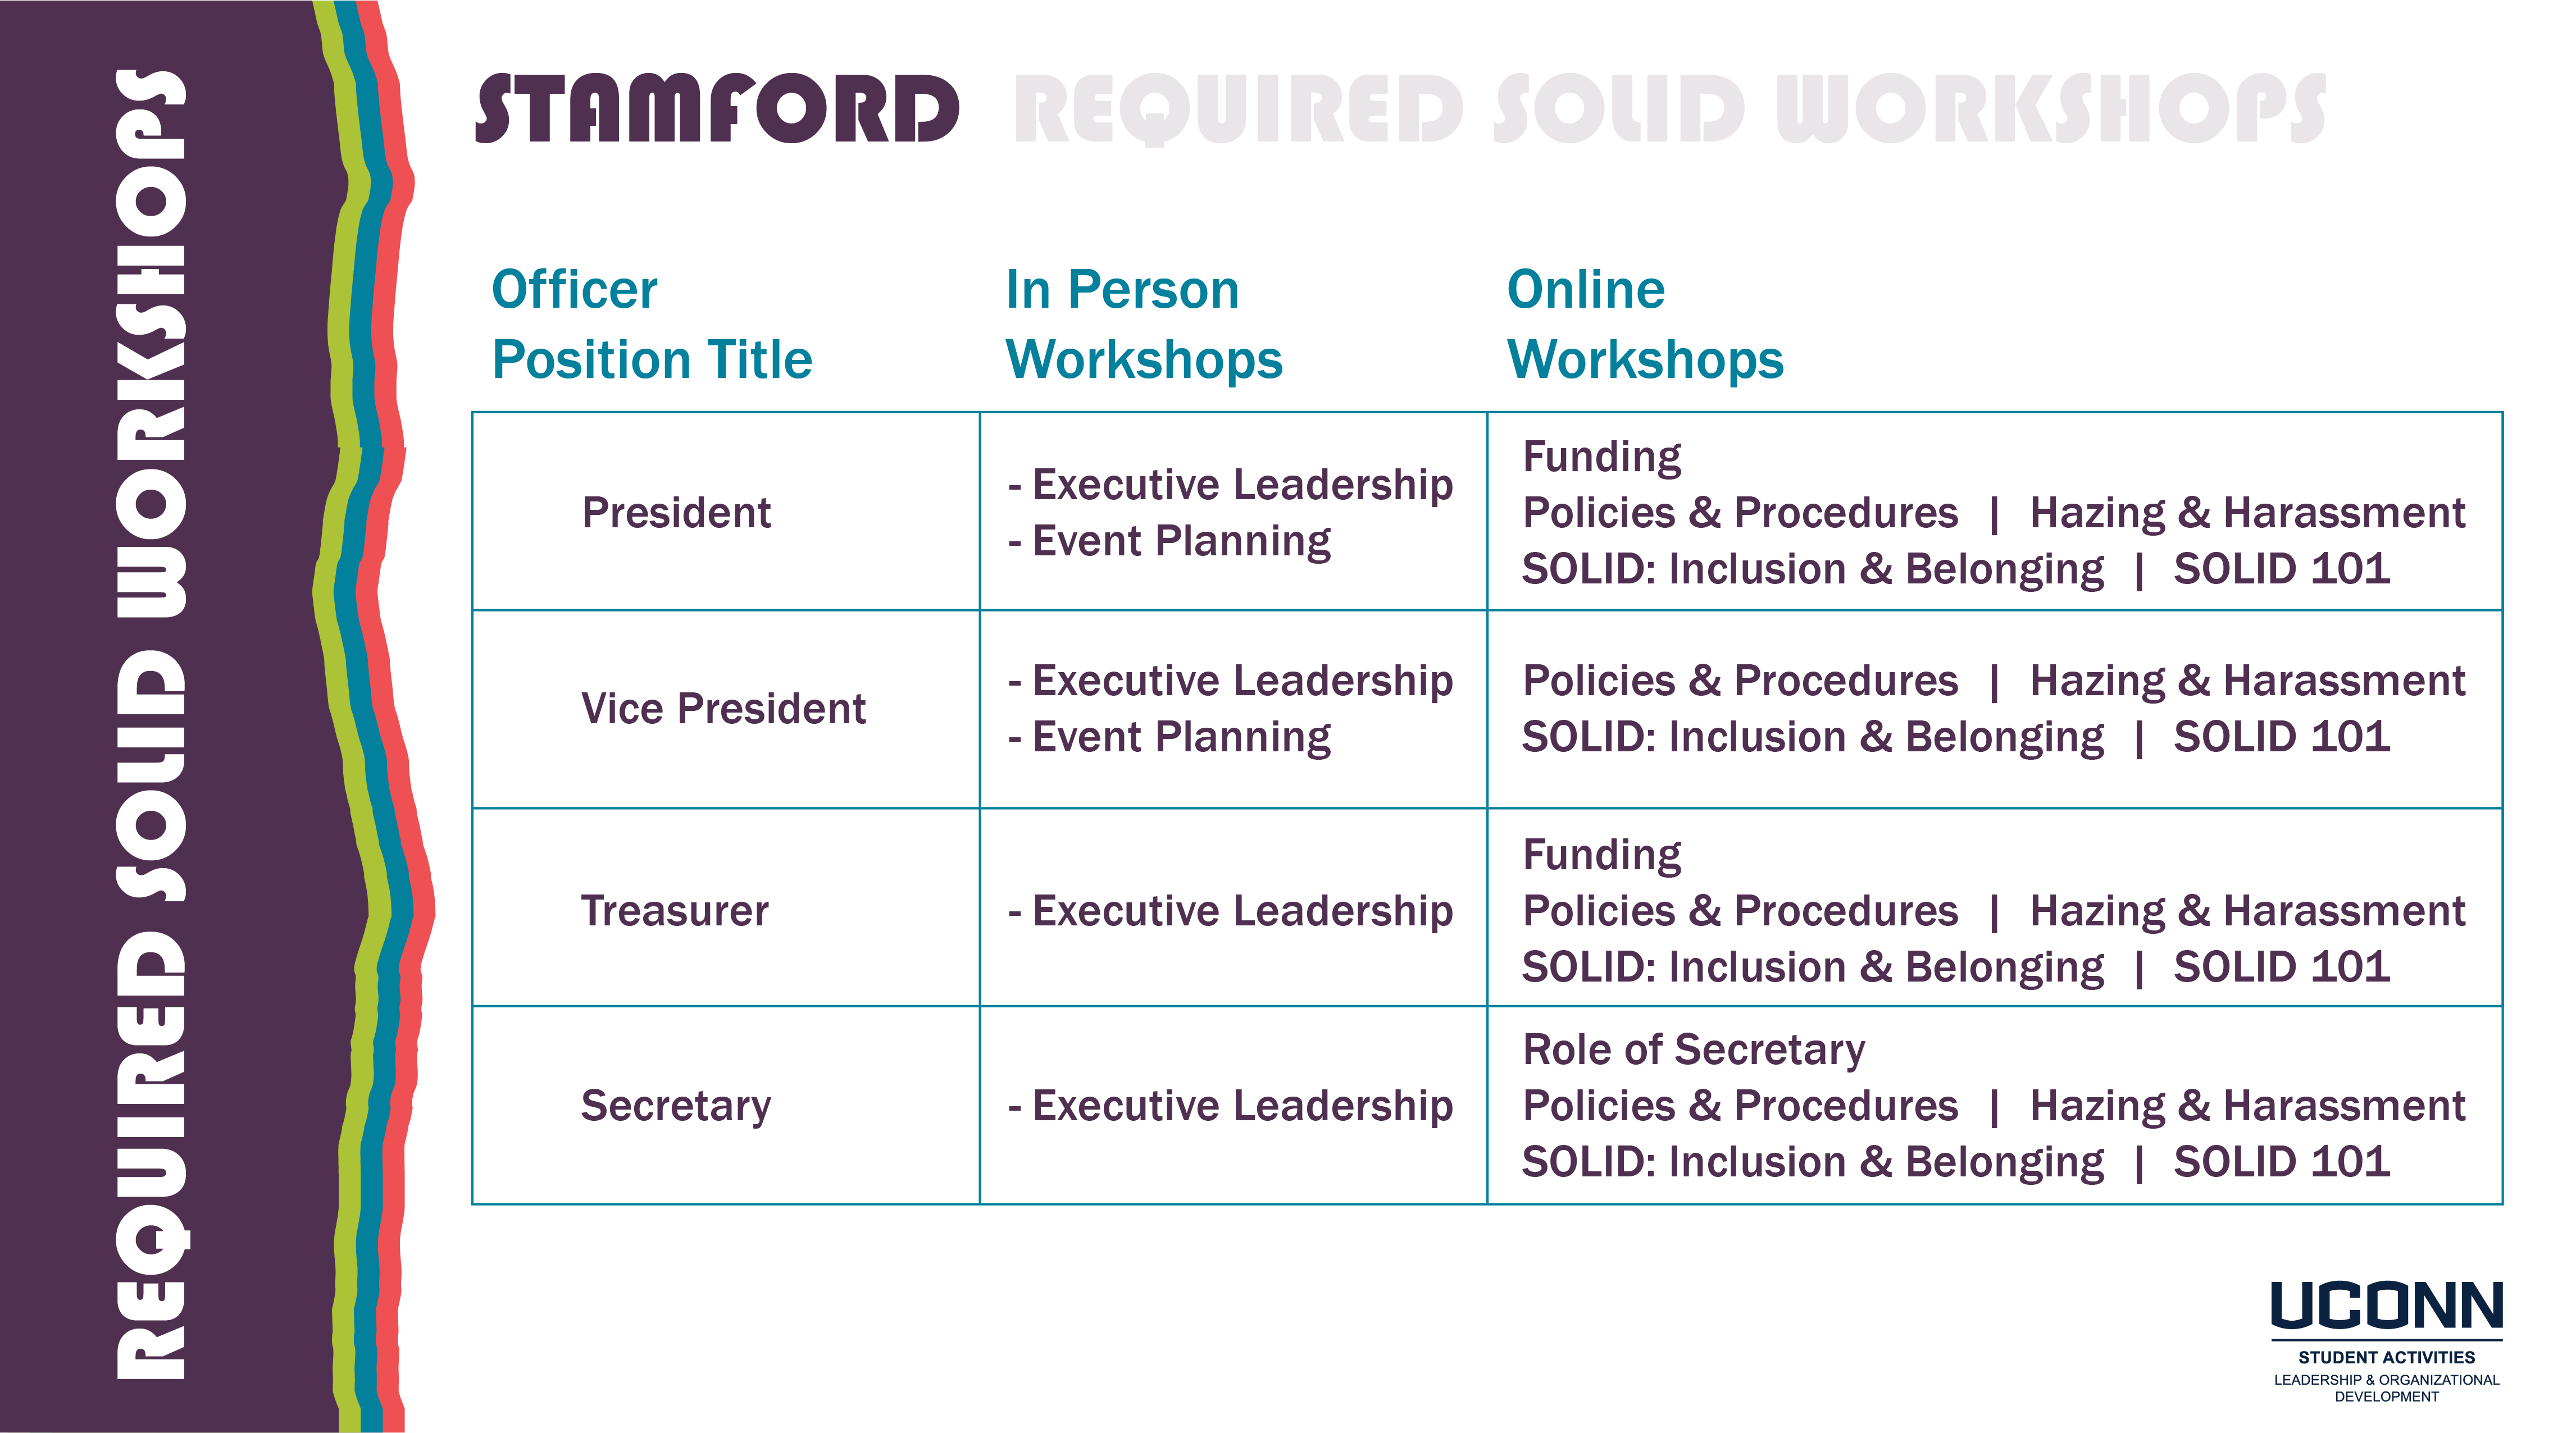 Stamford SOLID Workshop Requirements Image (read below for text)